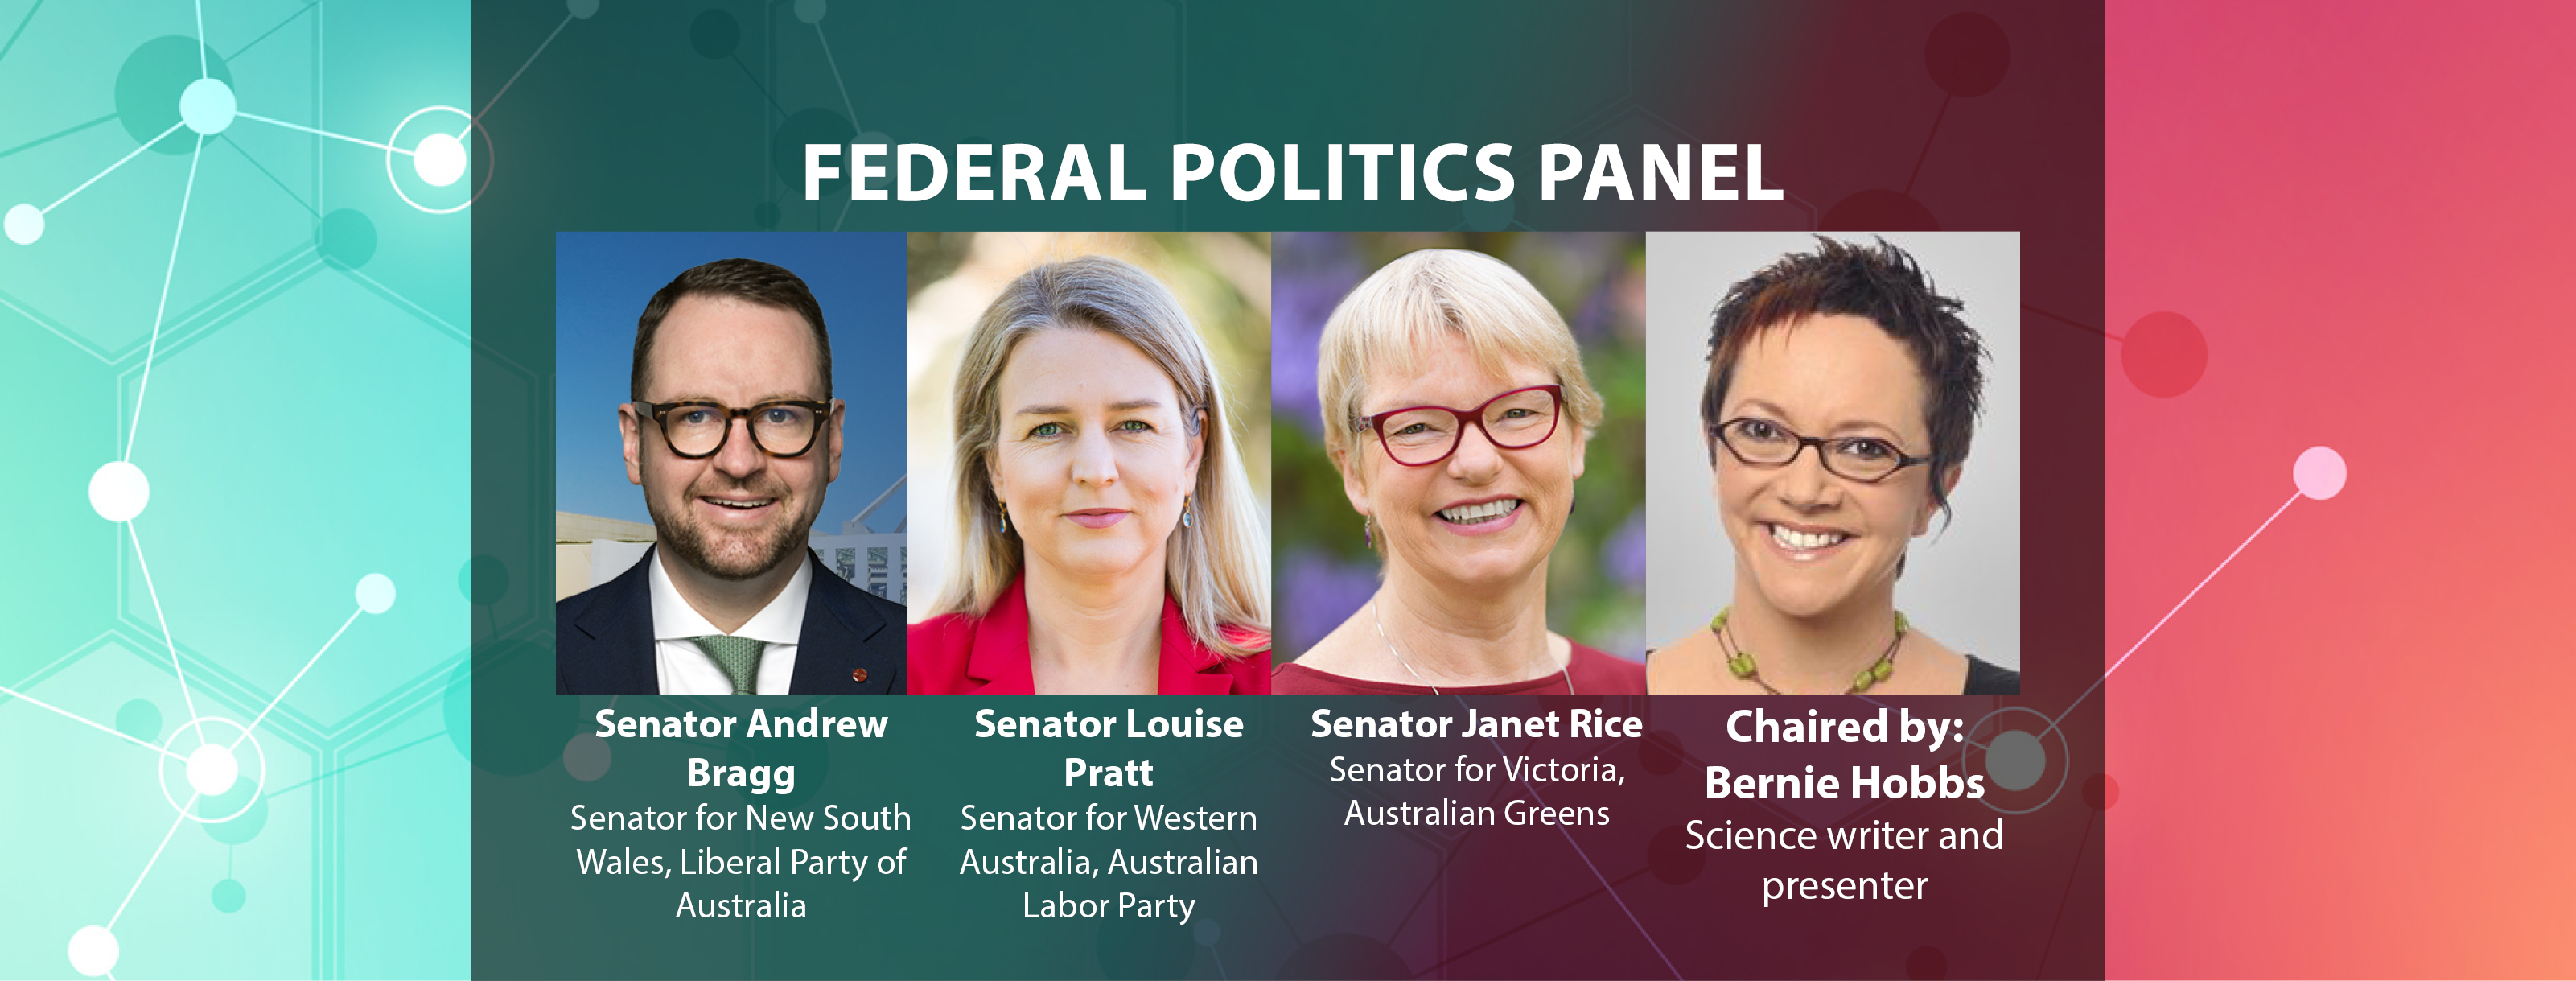 Senator Andrew Bragg Senator for New South Wales, Liberal Party of Australia Senator Louise Pratt Senator for Western Australia, Australian Labor Party Senator Janet Rice Senator for Victoria, Australian Greens Chaired by: Bernie Hobbs Science writer and presenter